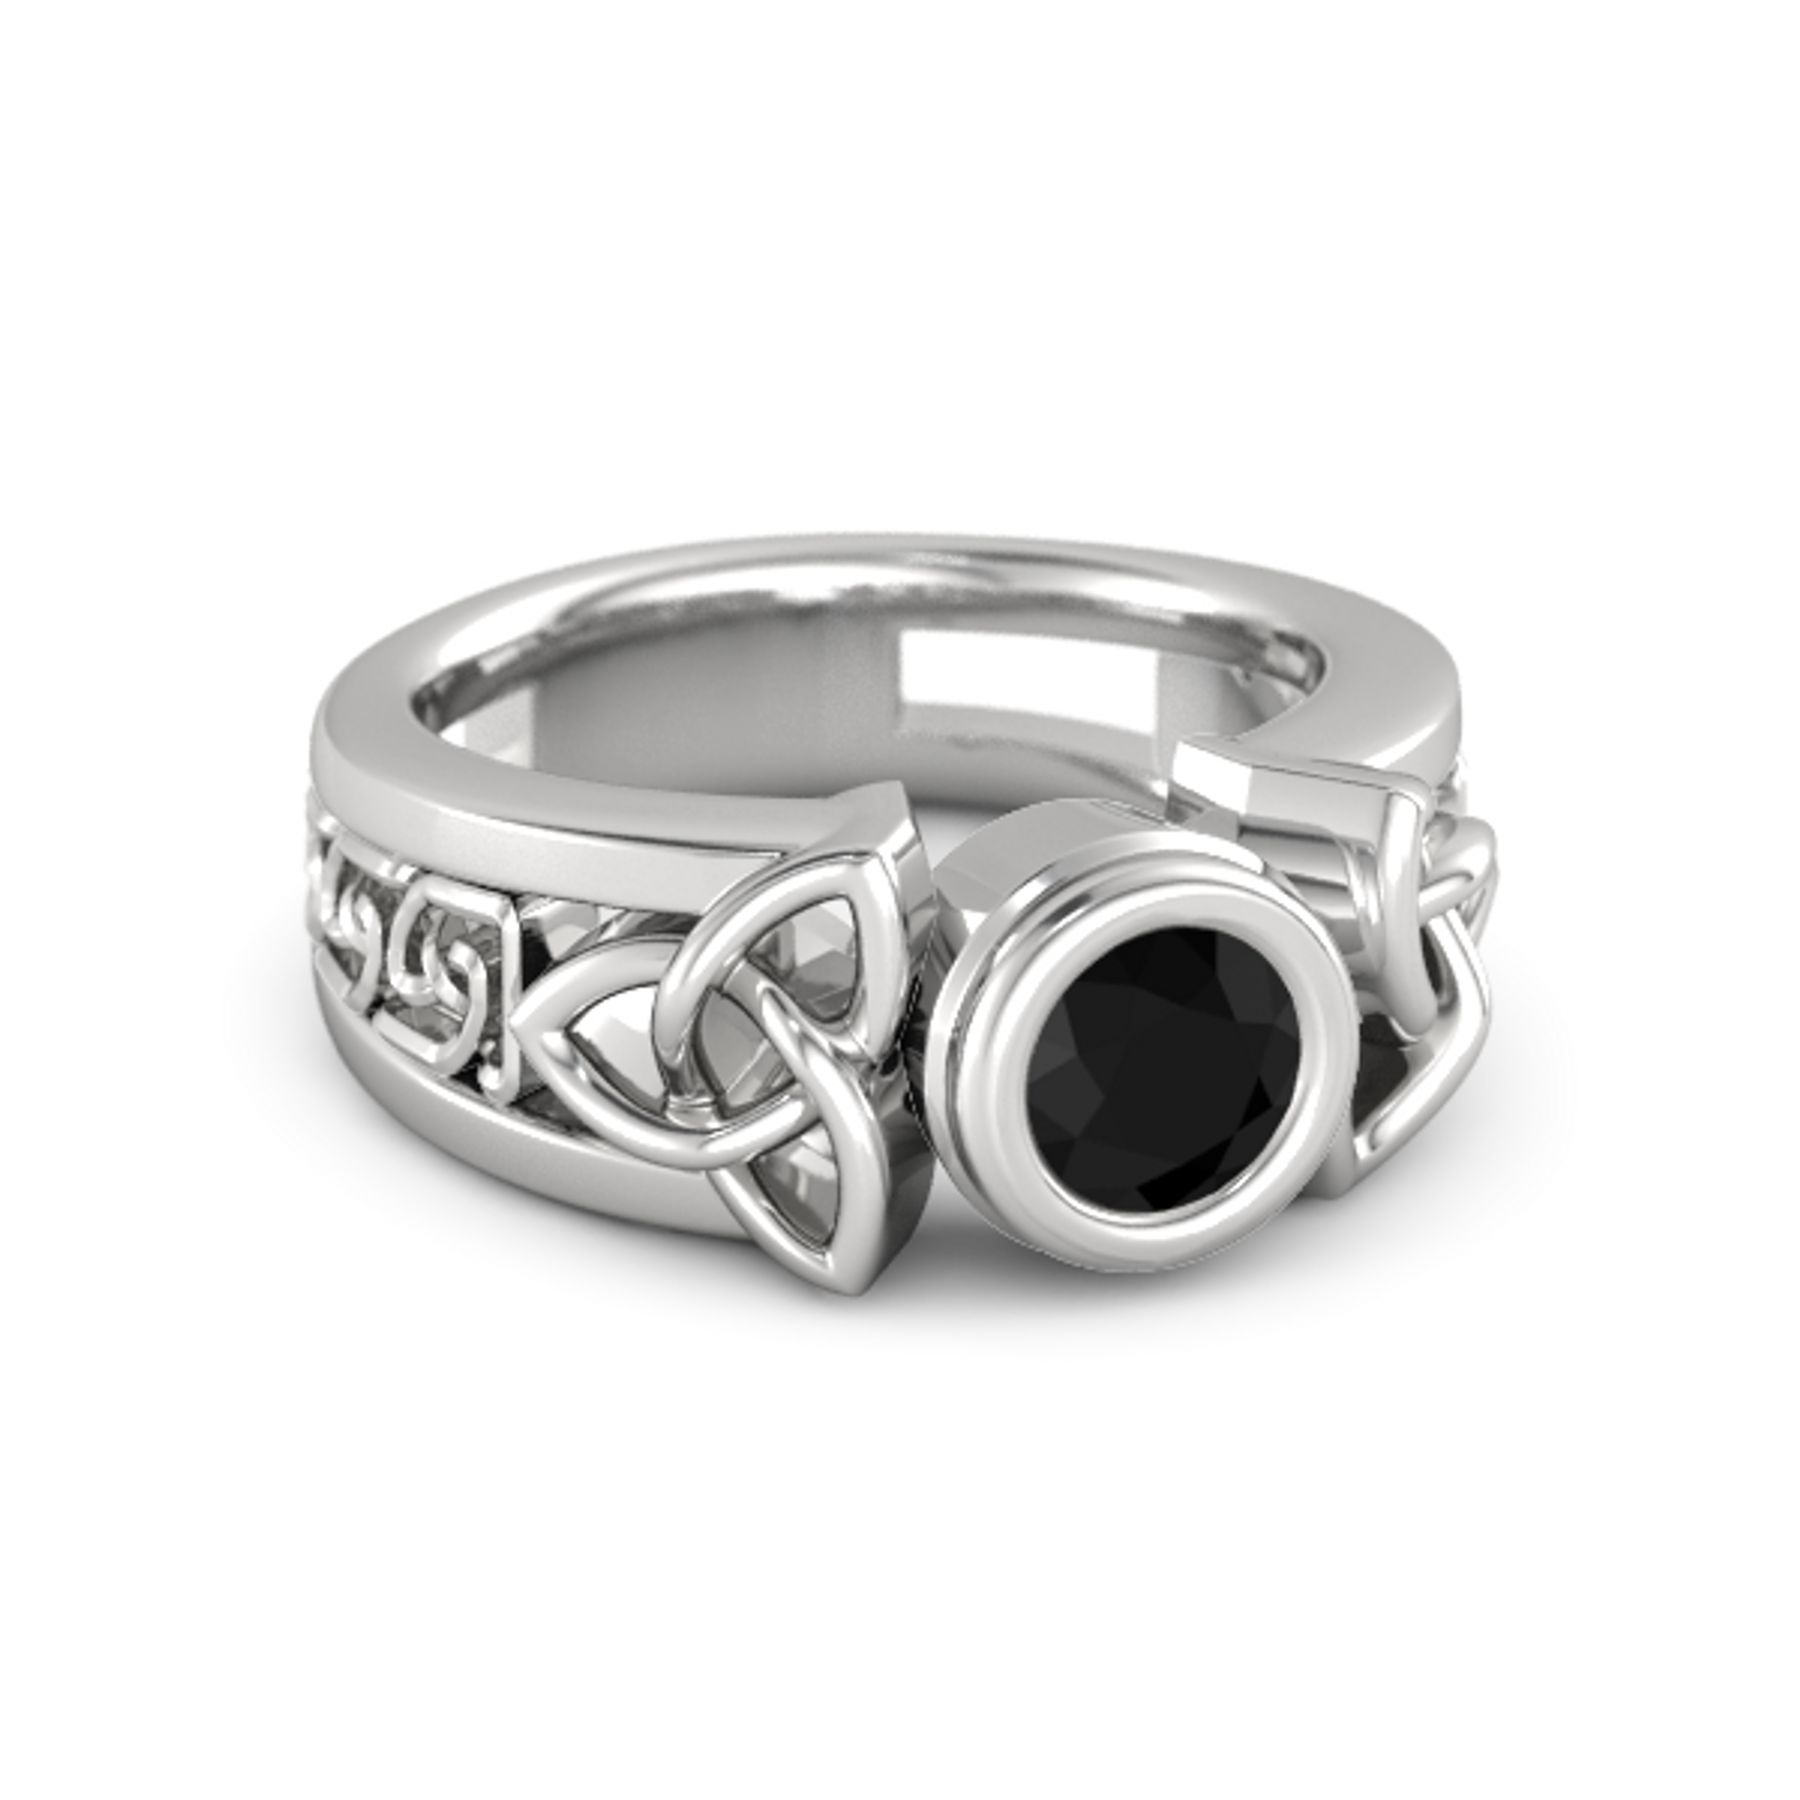 Celtic Sun Ring - Round Black Onyx Sterling Silver Ring